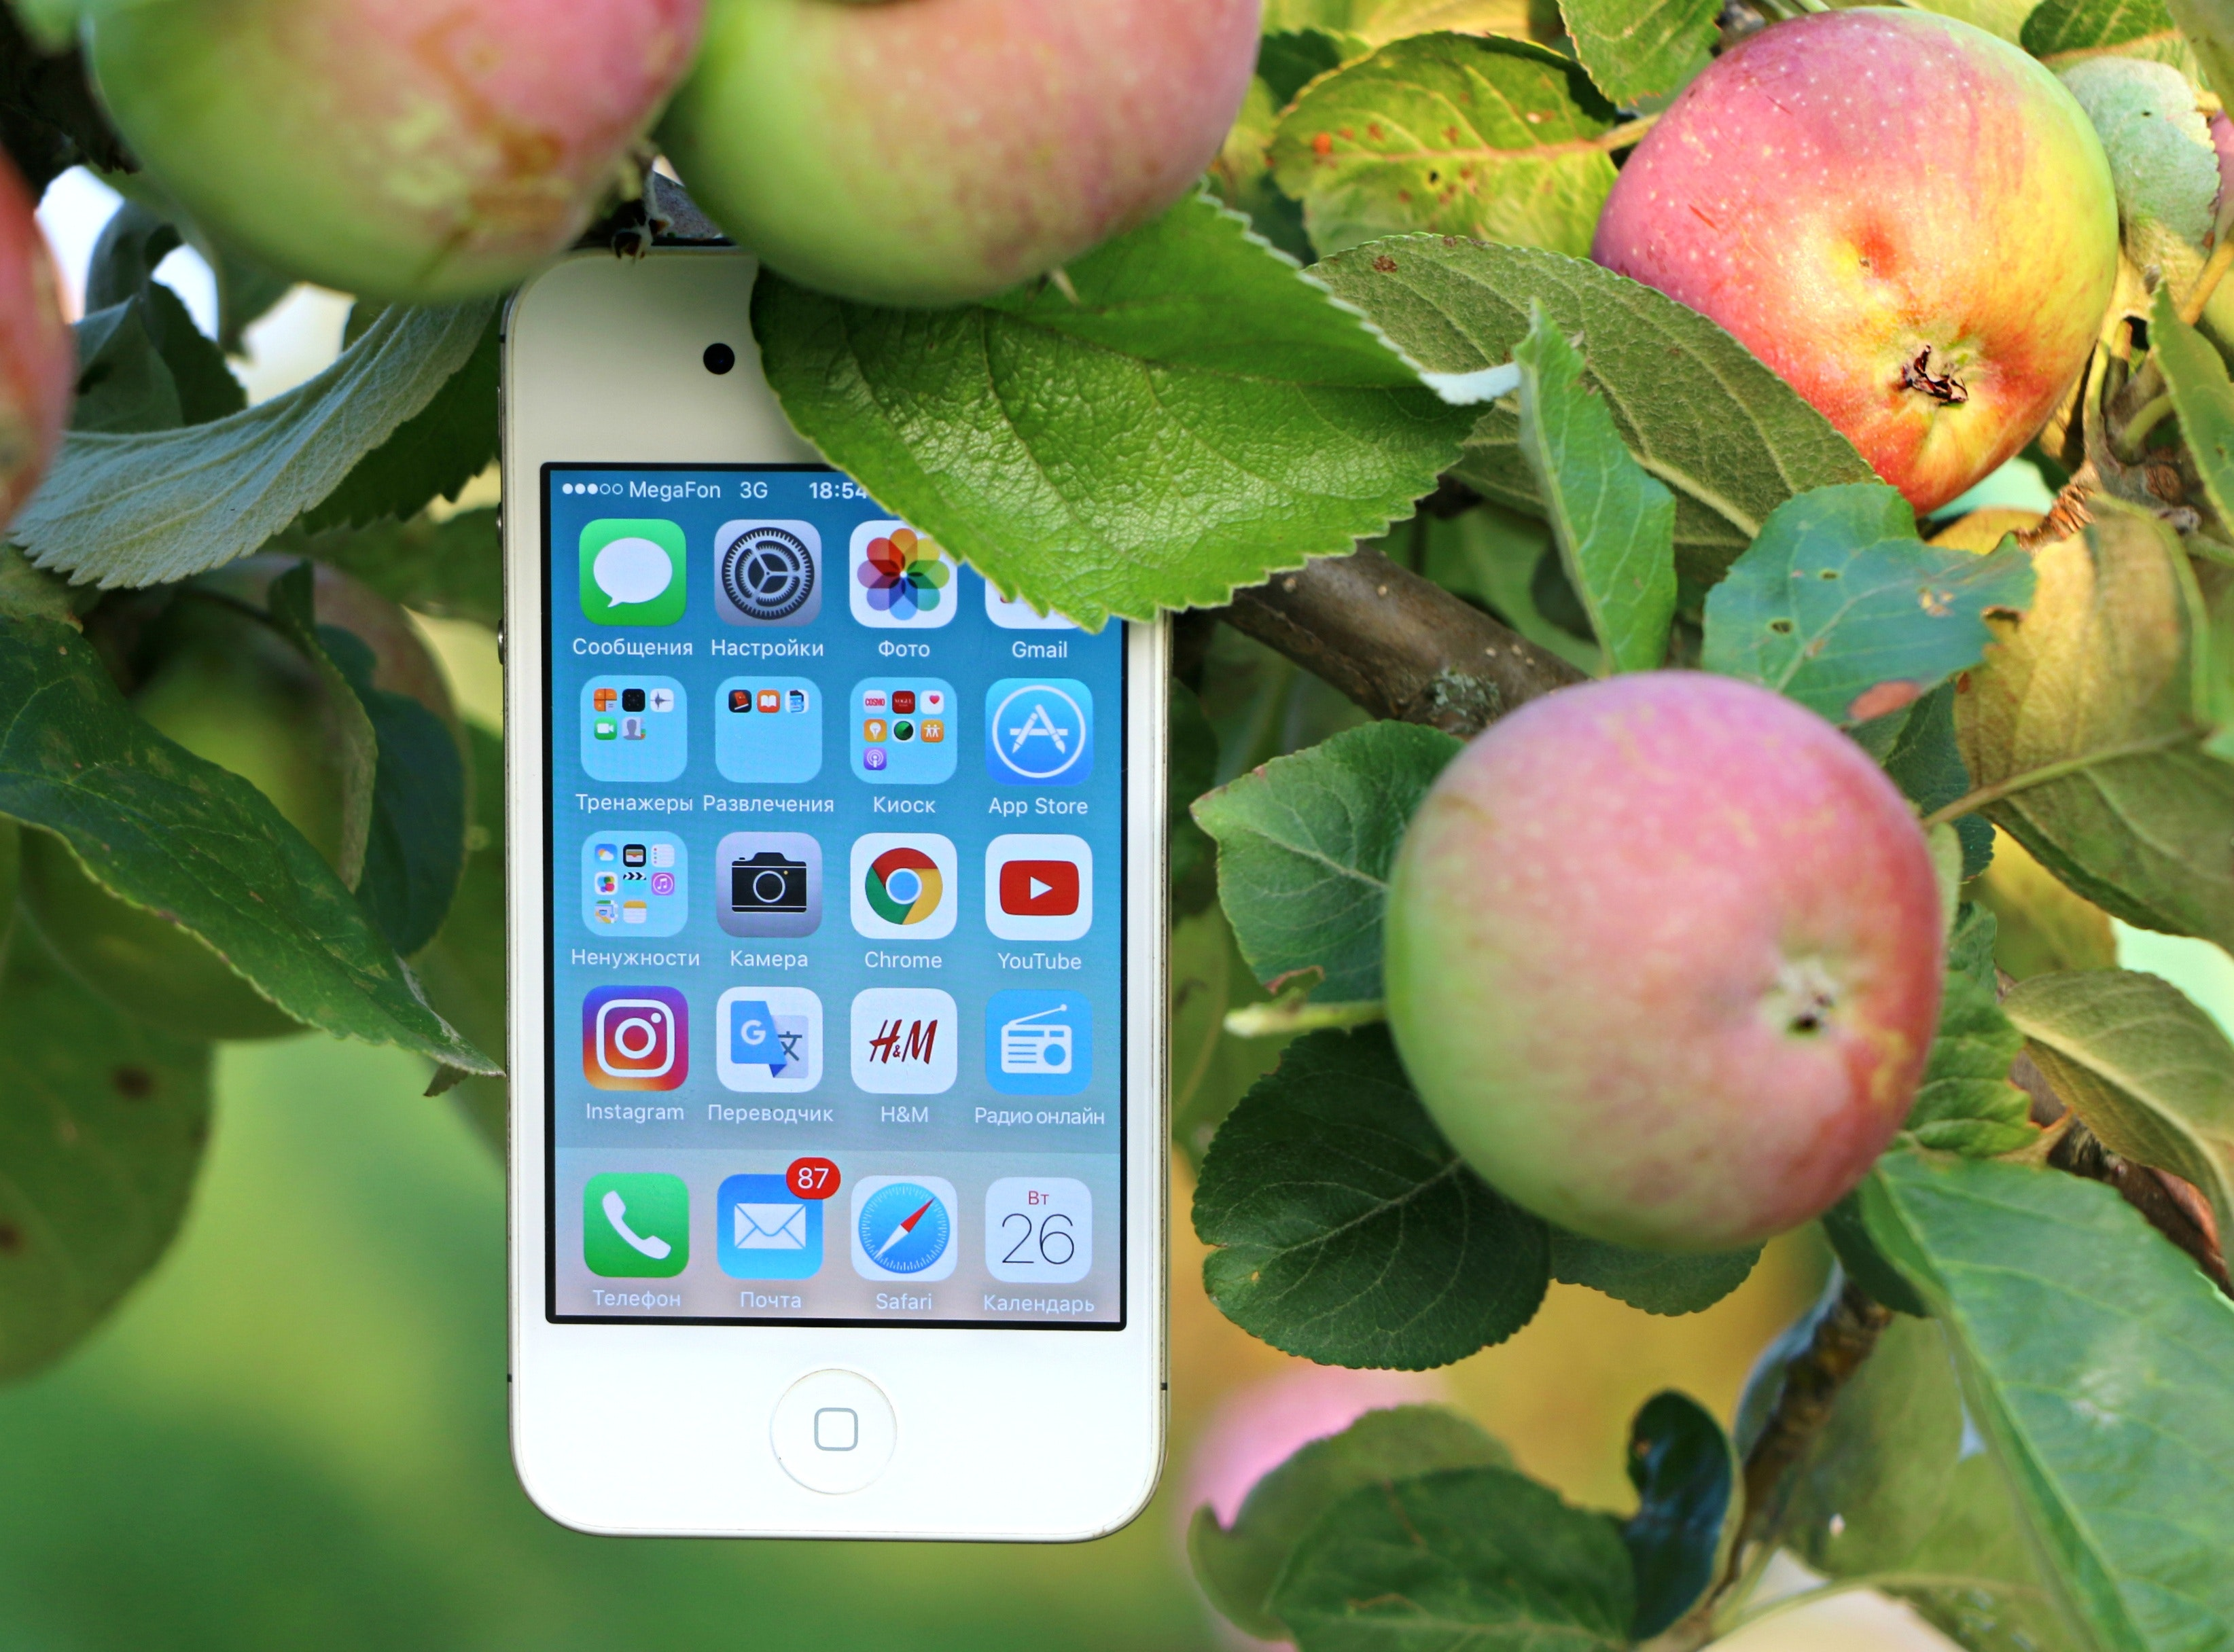 White iphone 4 hanging on branch photo